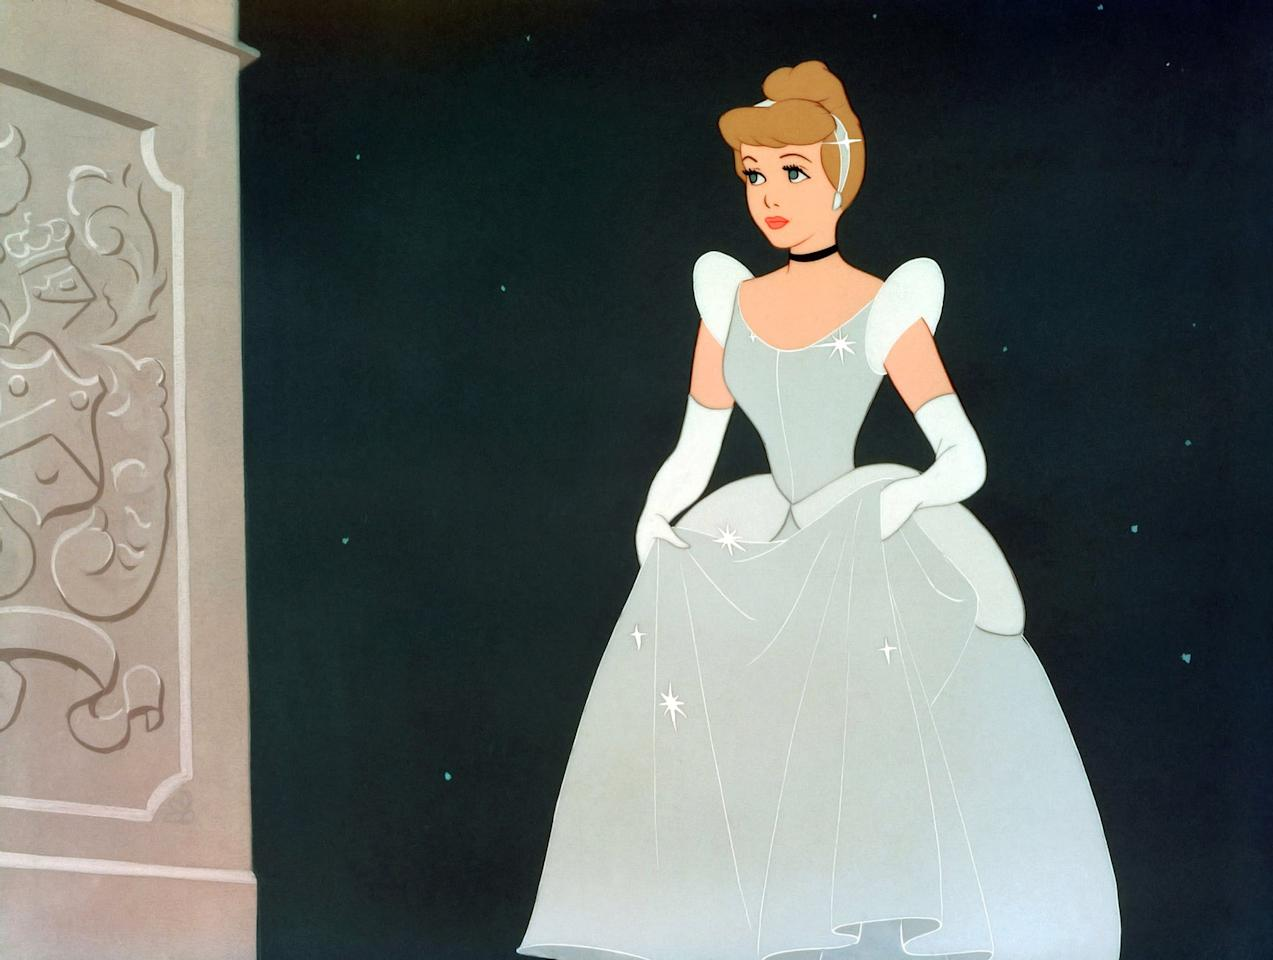 """<p>Ilene Woods, who voiced the character of Cinderella, remembered Walt Disney saying to her, """"You're my favorite heroine, you know."""" She said, """"You mean Cinderella?"""" """"Yes,"""" he said, """"there's something about that story I associate with.""""</p>"""